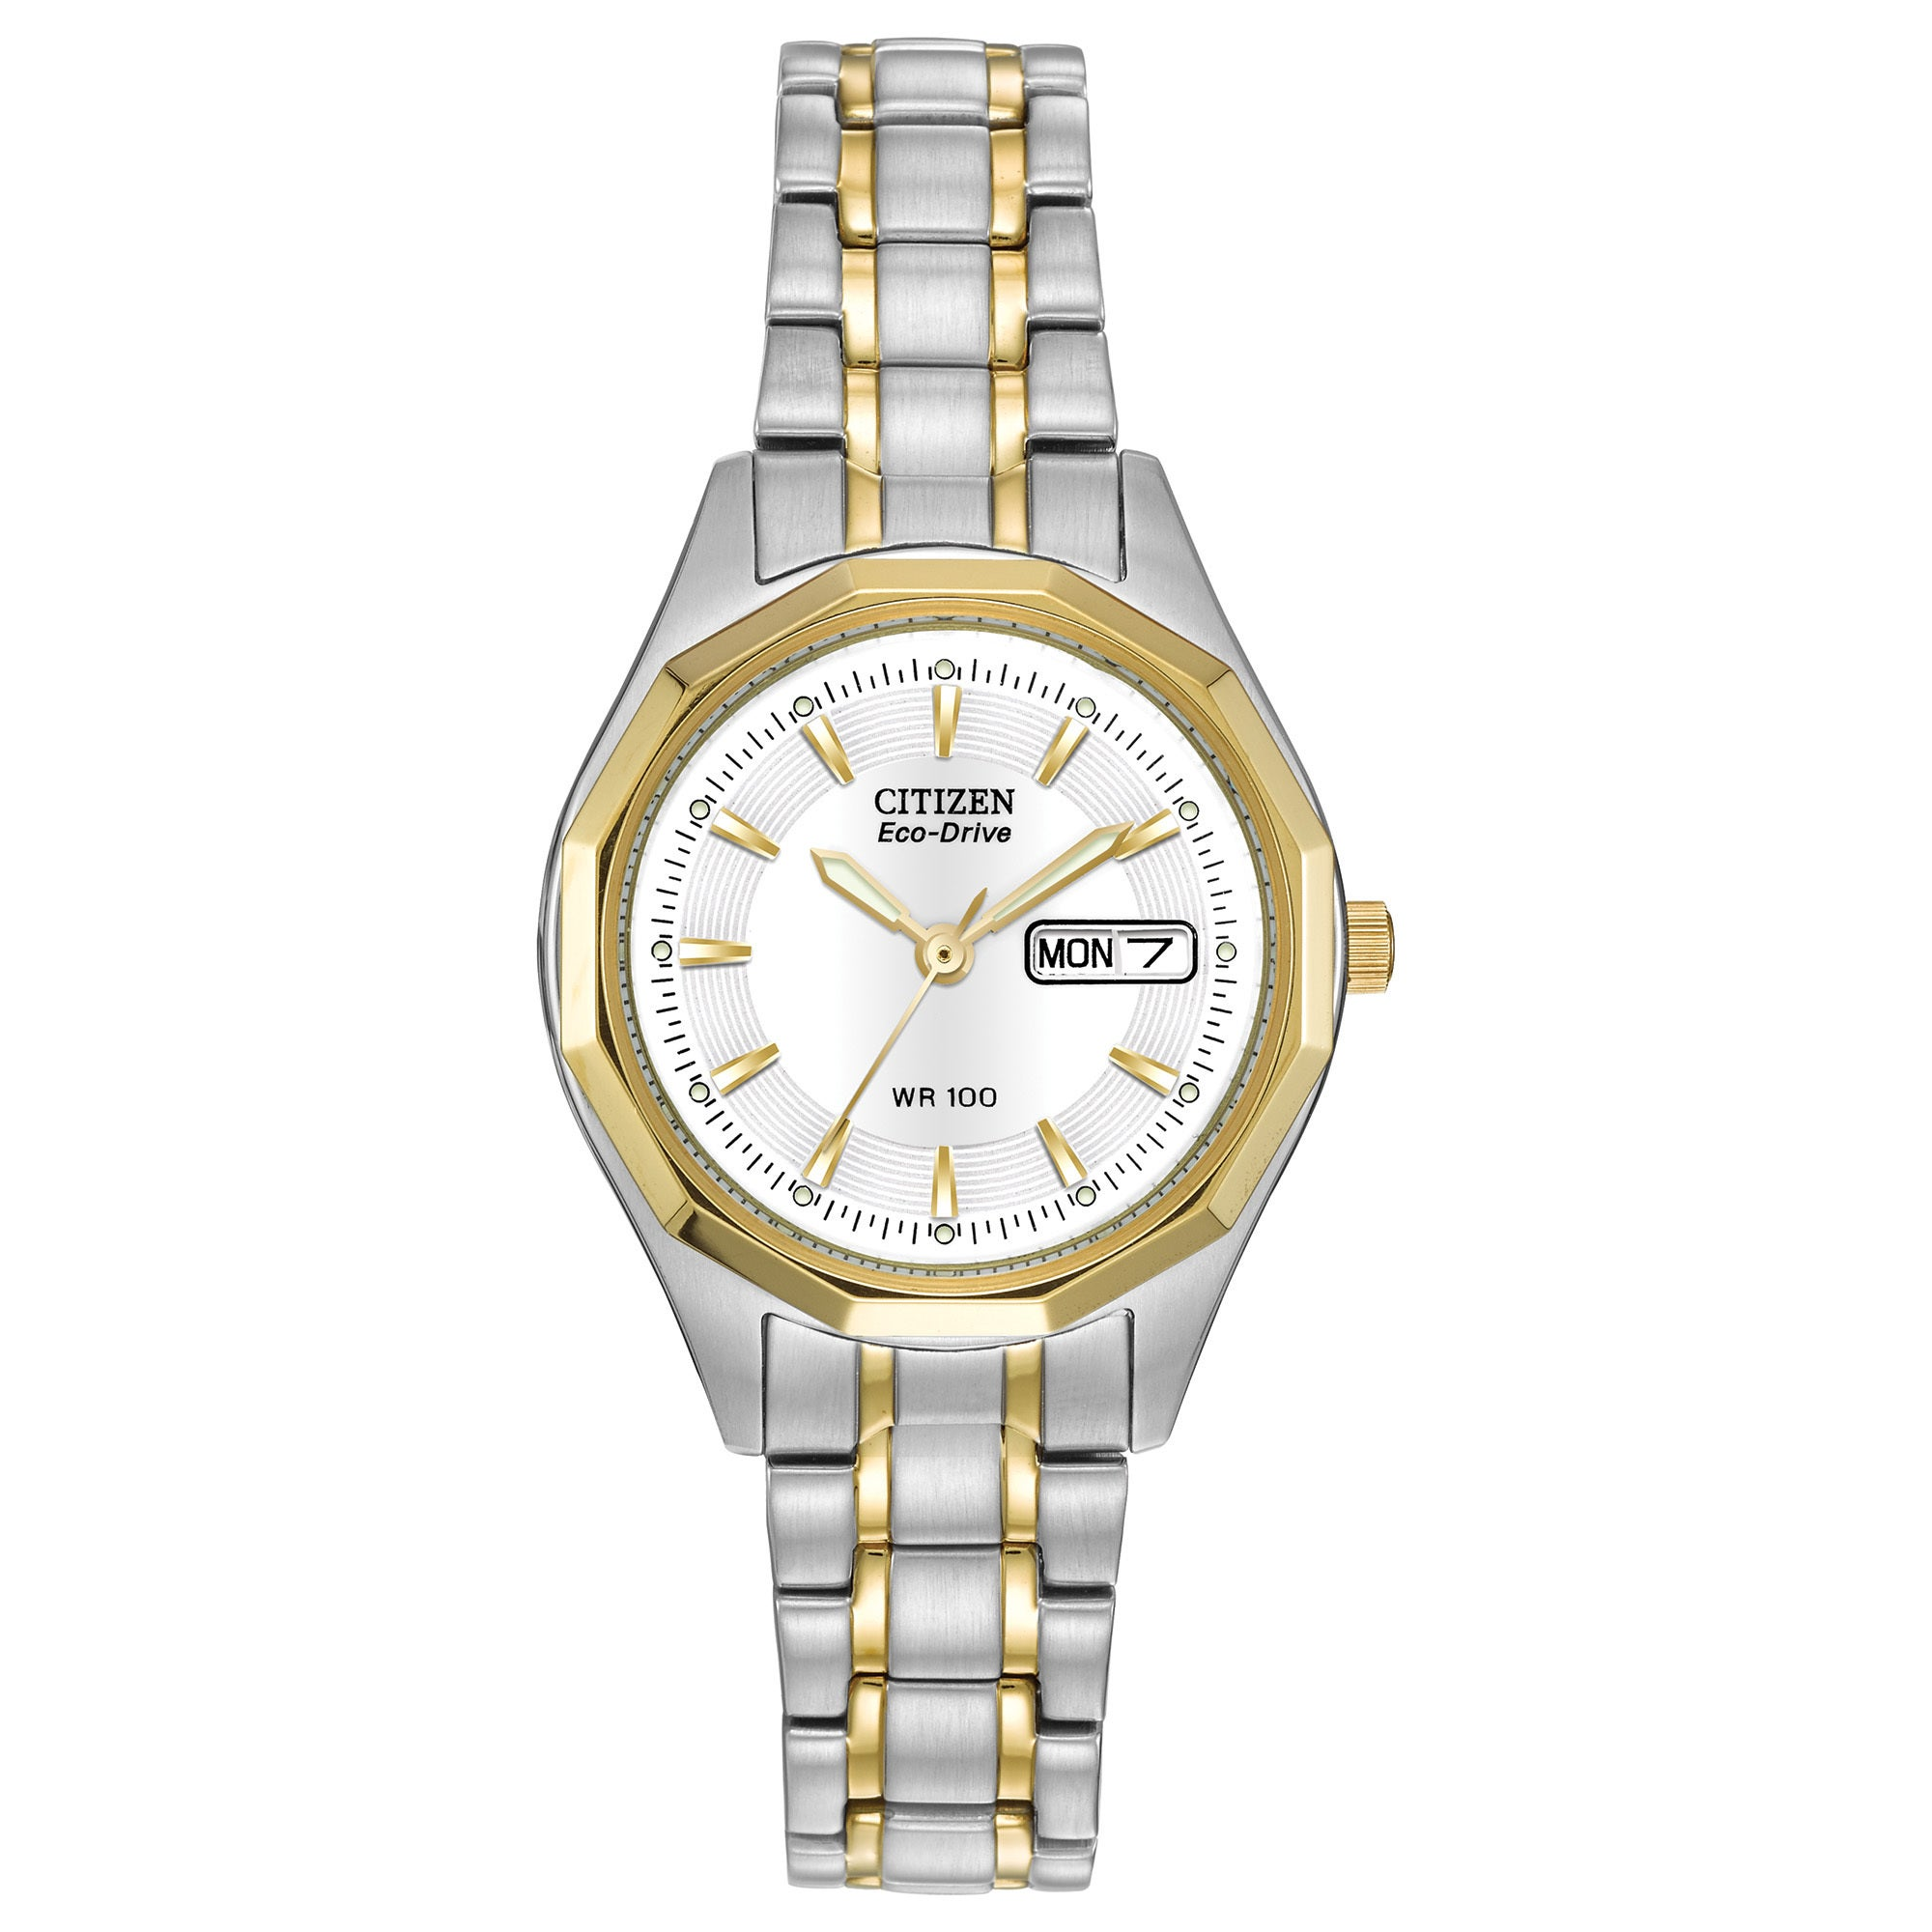 Citizen Women's EW3144-51A Eco-Drive Bracelets Watch (Thi...